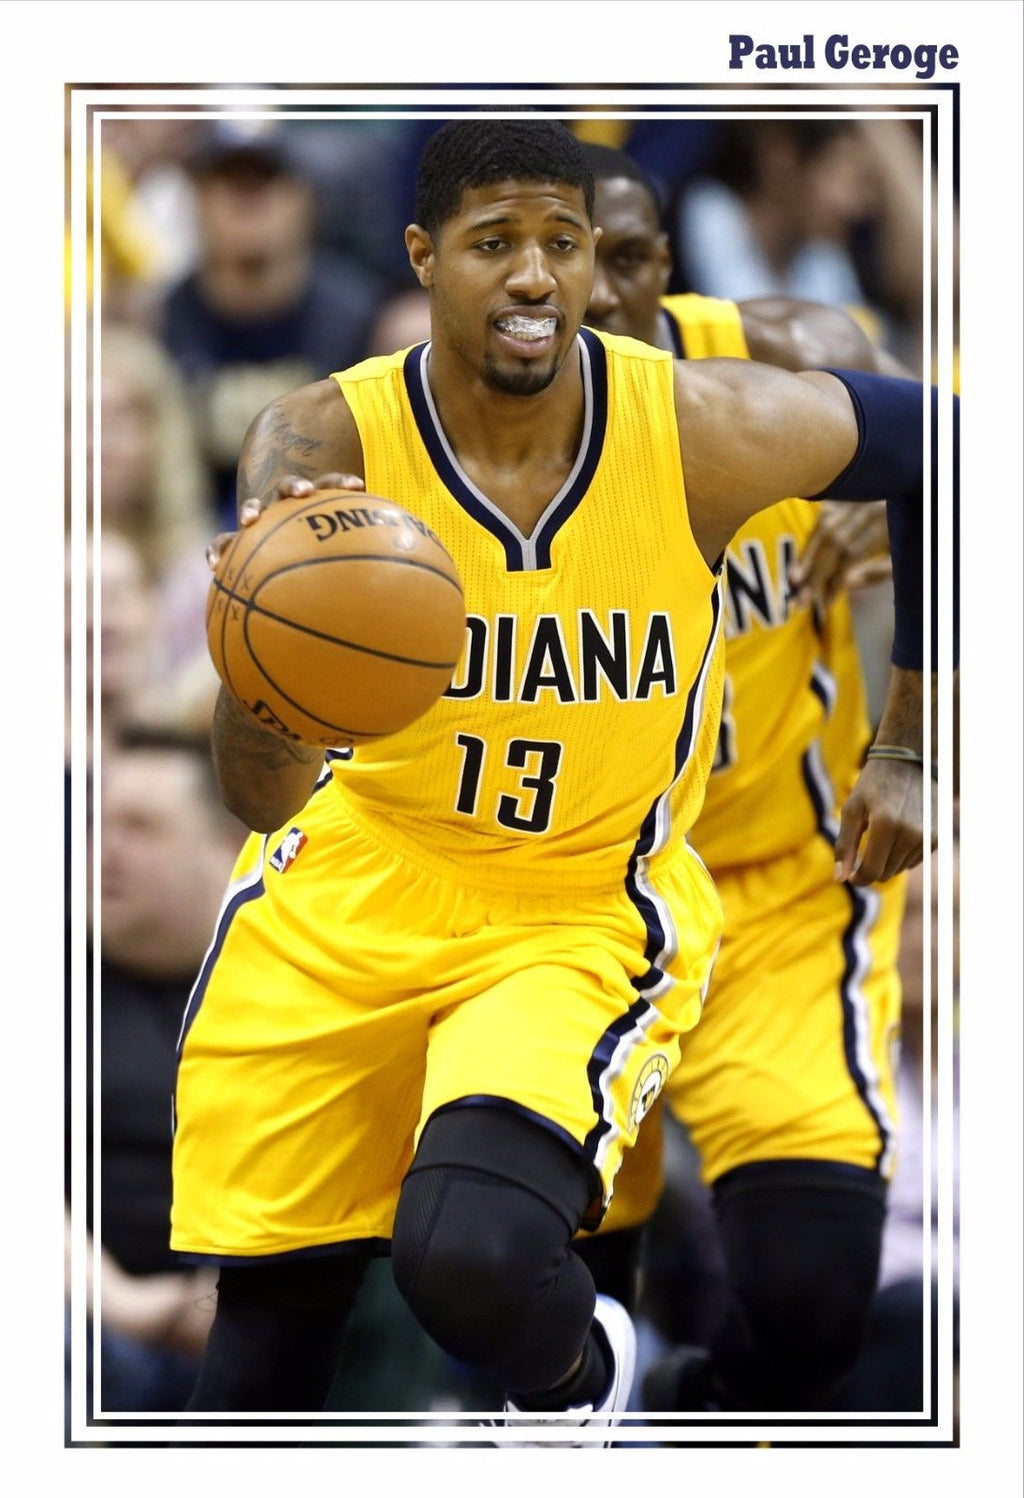 9a6dd74f6f8 GIANT 13x19 PRINT - NBA SUPERSTAR PAUL GEORGE GAME POSTER – Image ...